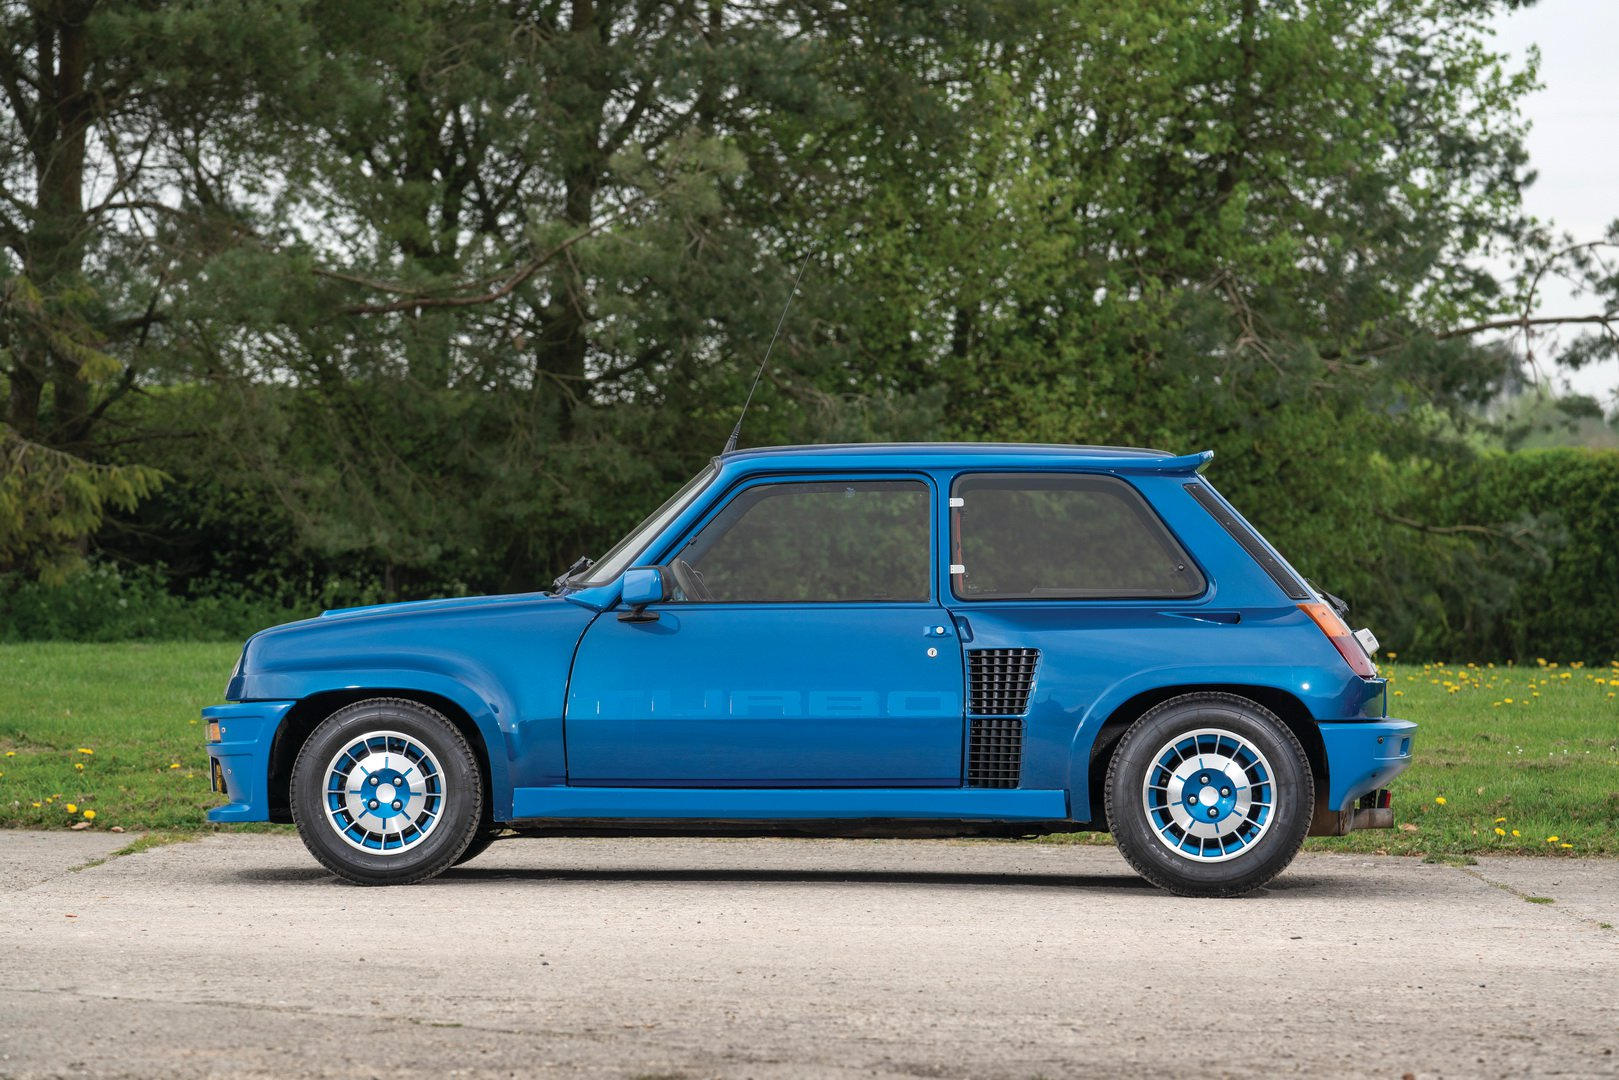 Renault-5-Turbo-for-sale-3